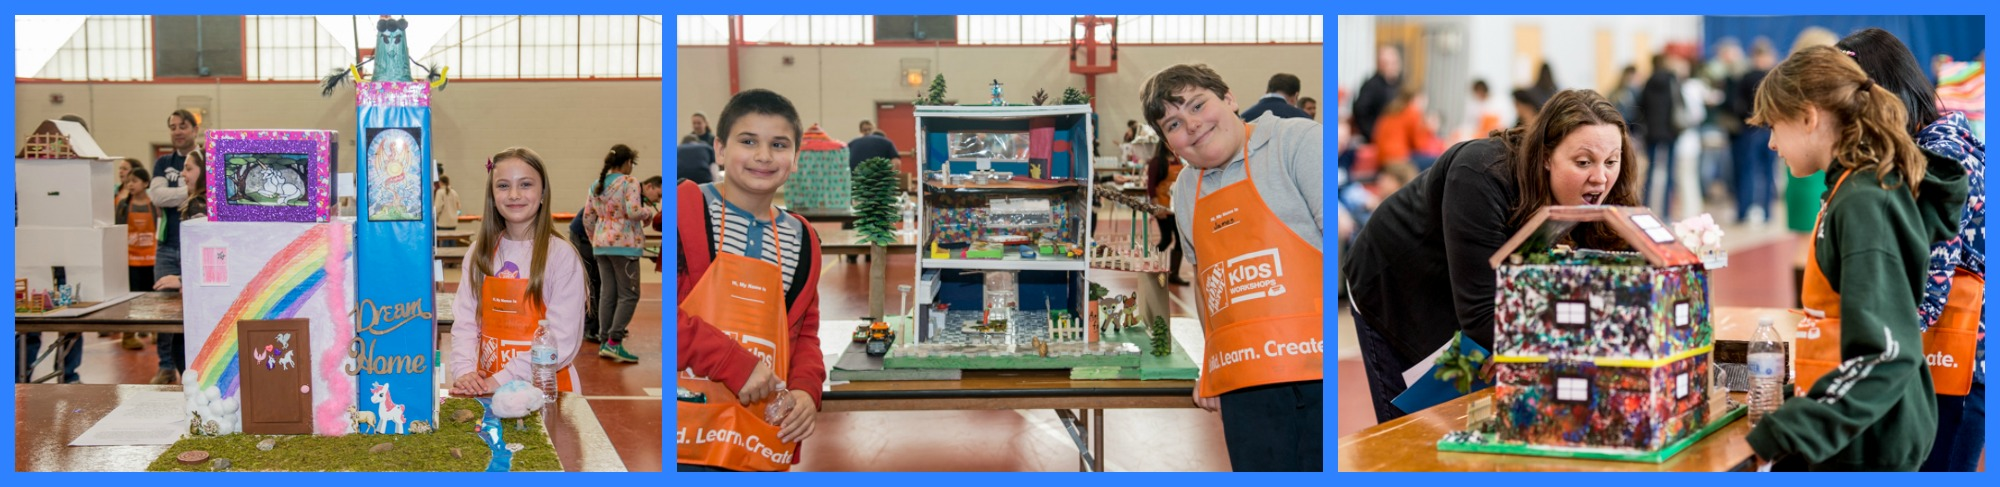 Habitat For Humanity Build A House Build A Dream Contest